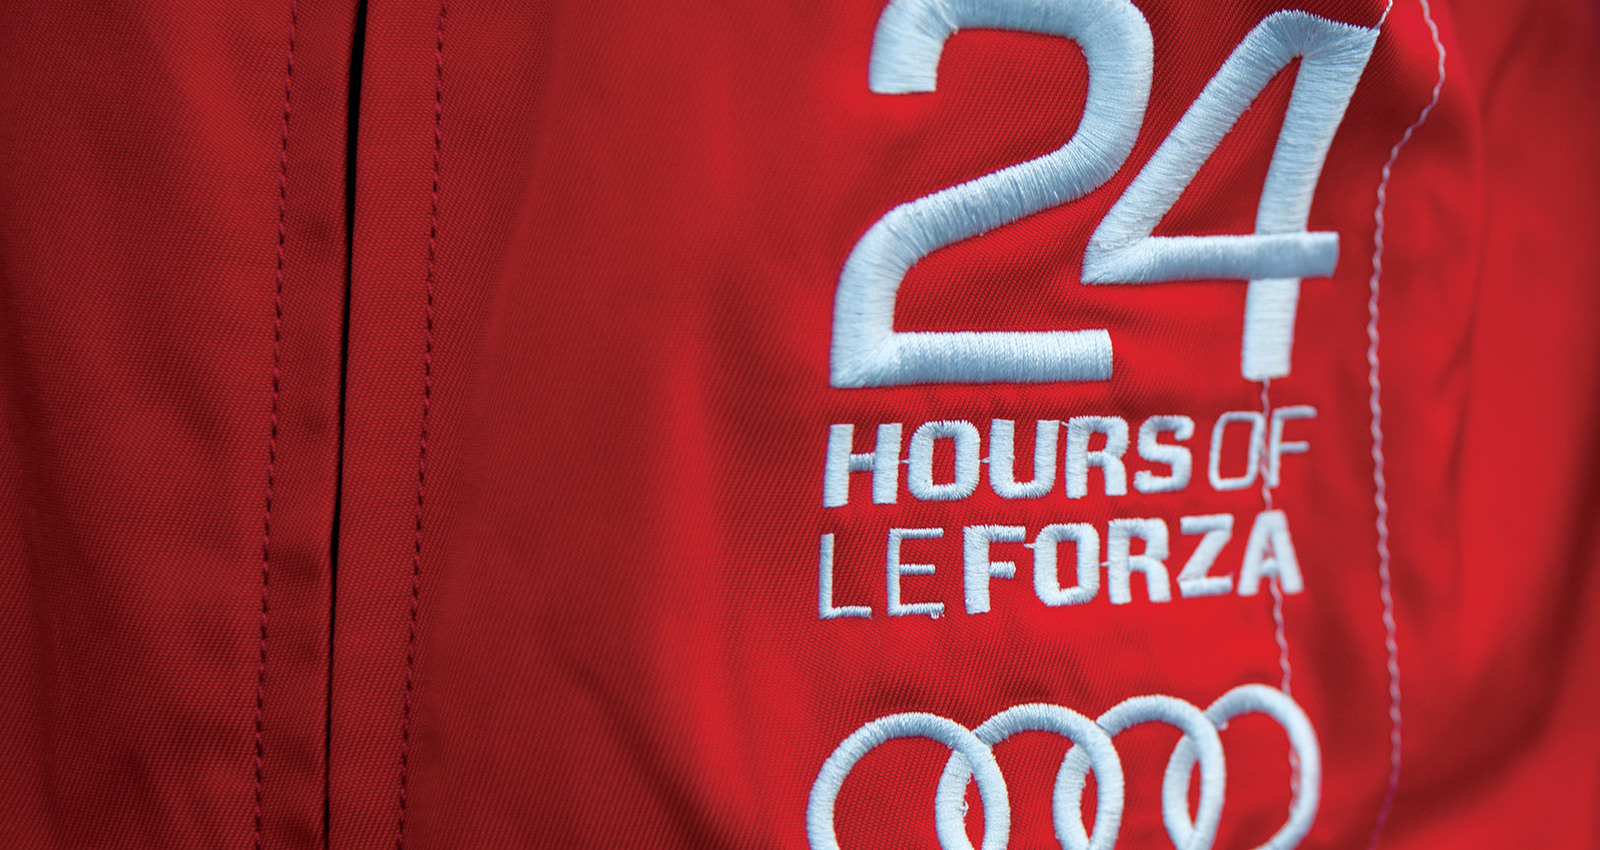 24 Hours of Le Forza